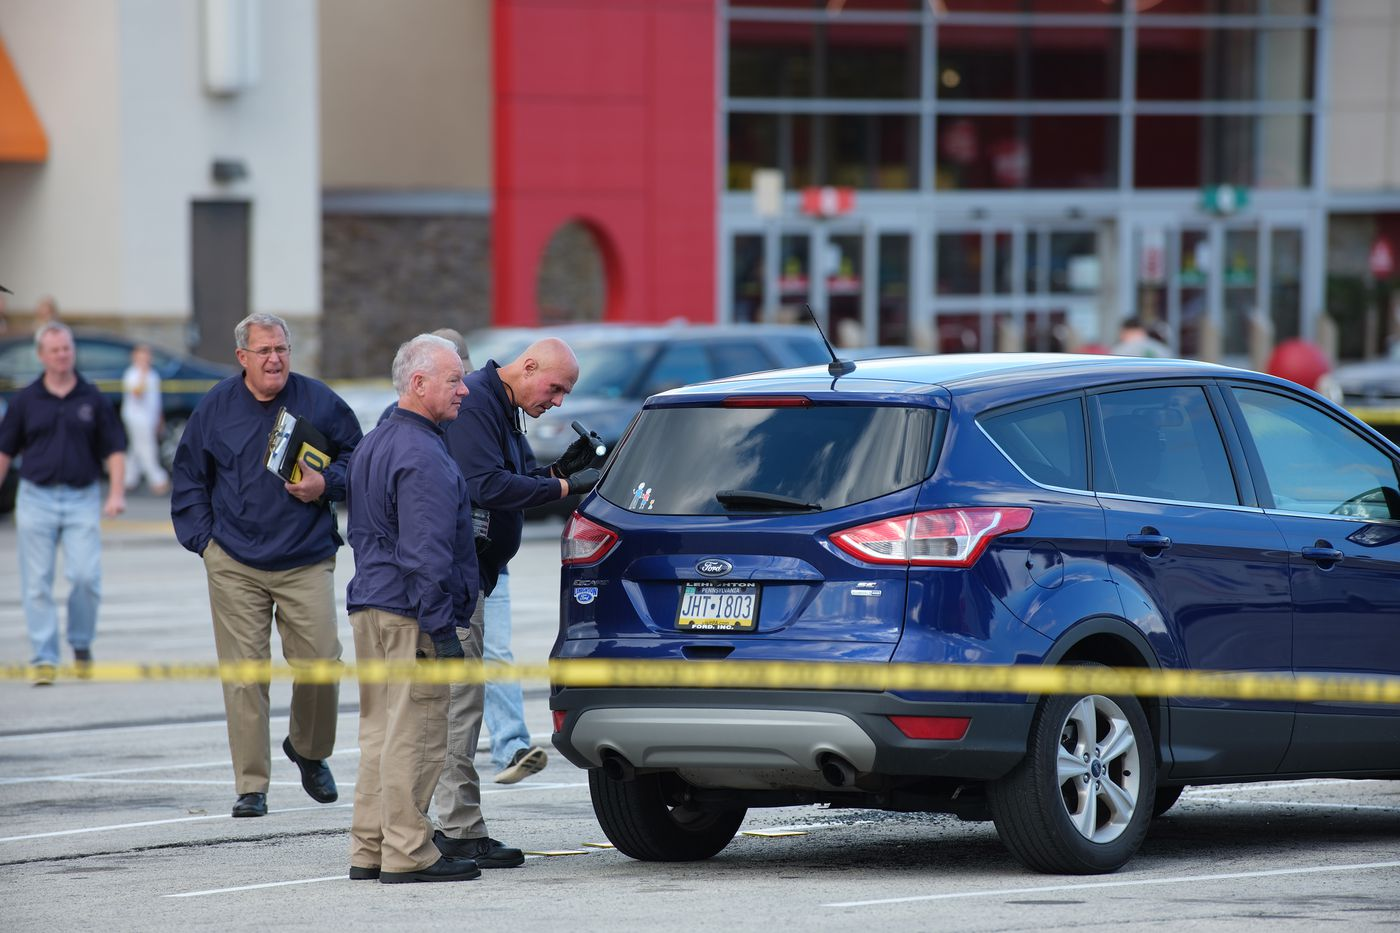 Springfield Mall reopens, search for gunmen continues after shooting